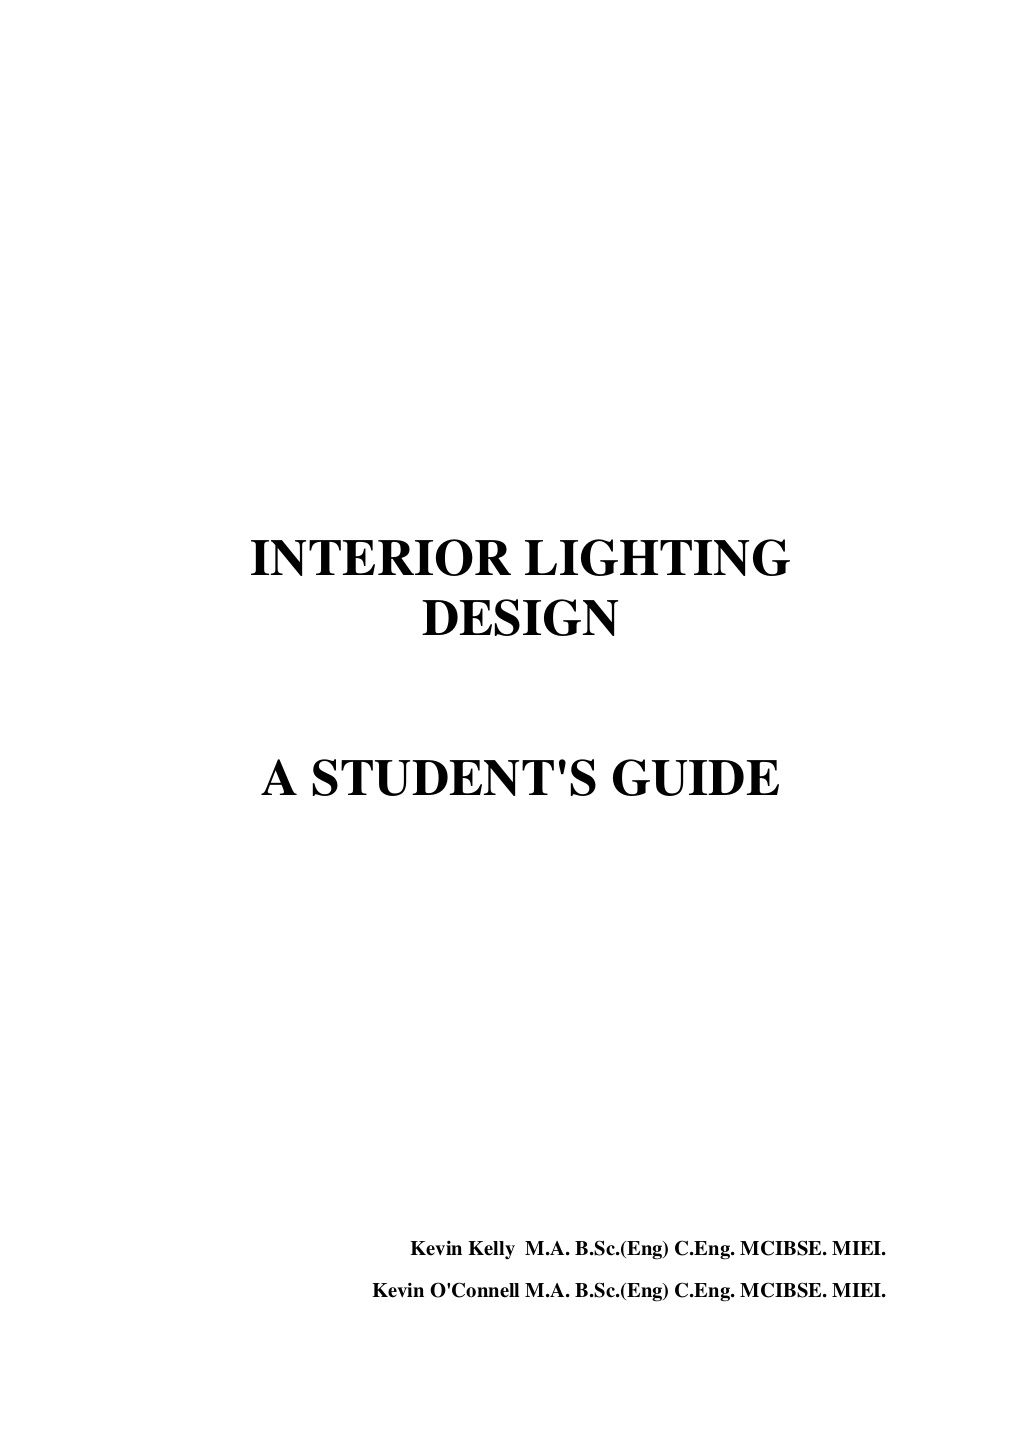 INTERIOR LIGHTING DESIGN A STUDENTS GUIDE By No Suhaila Via Slideshare